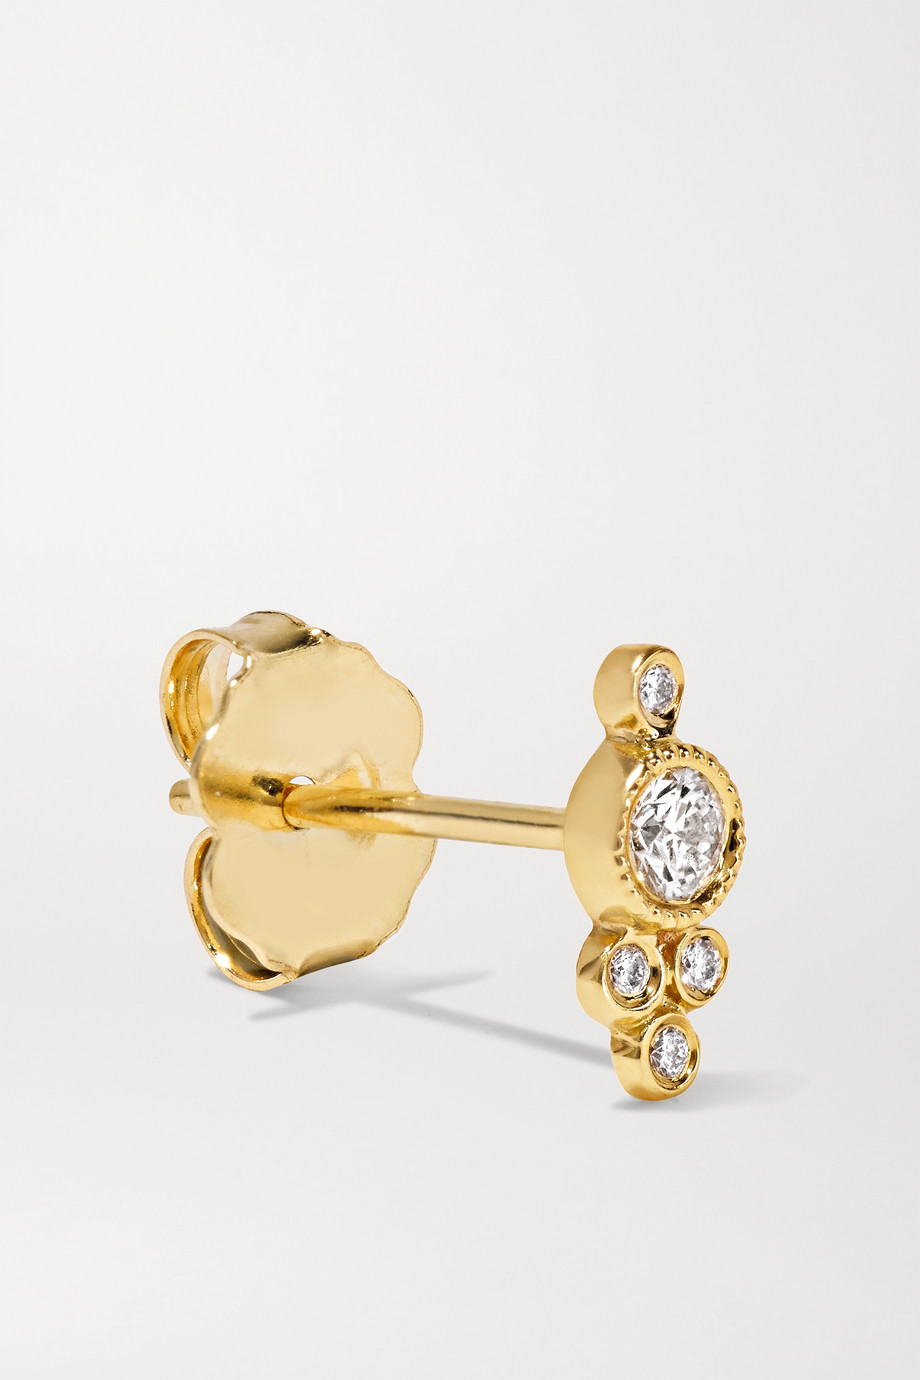 Maria Tash 4mm 18-karat gold diamond earring